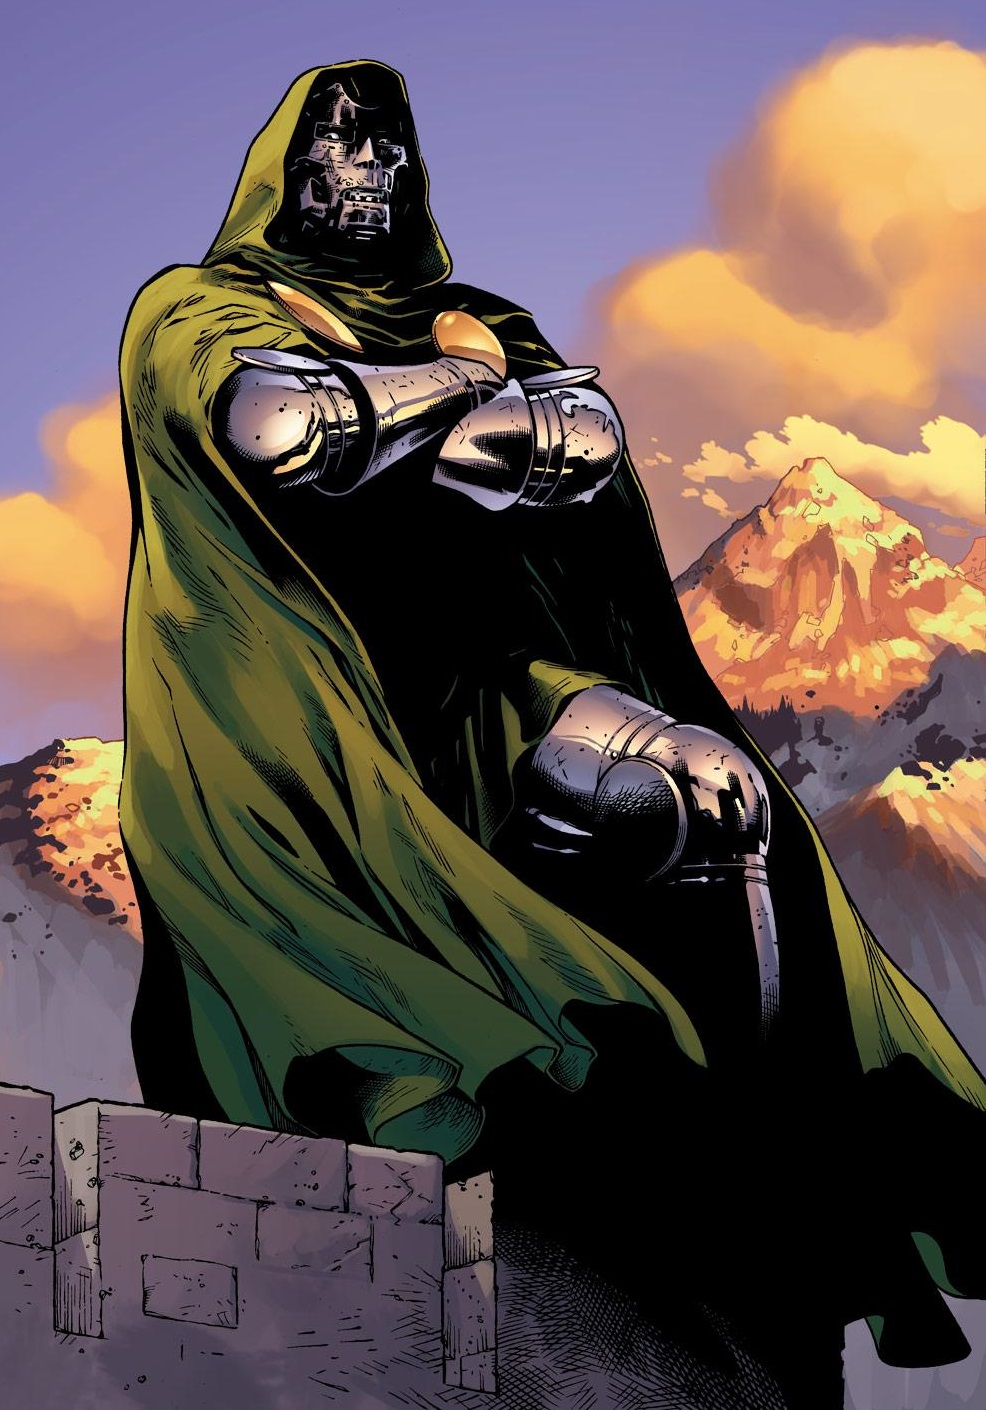 a6cb59105d0 Victor von Doom (Earth-616) | Marvel Database | FANDOM powered by Wikia